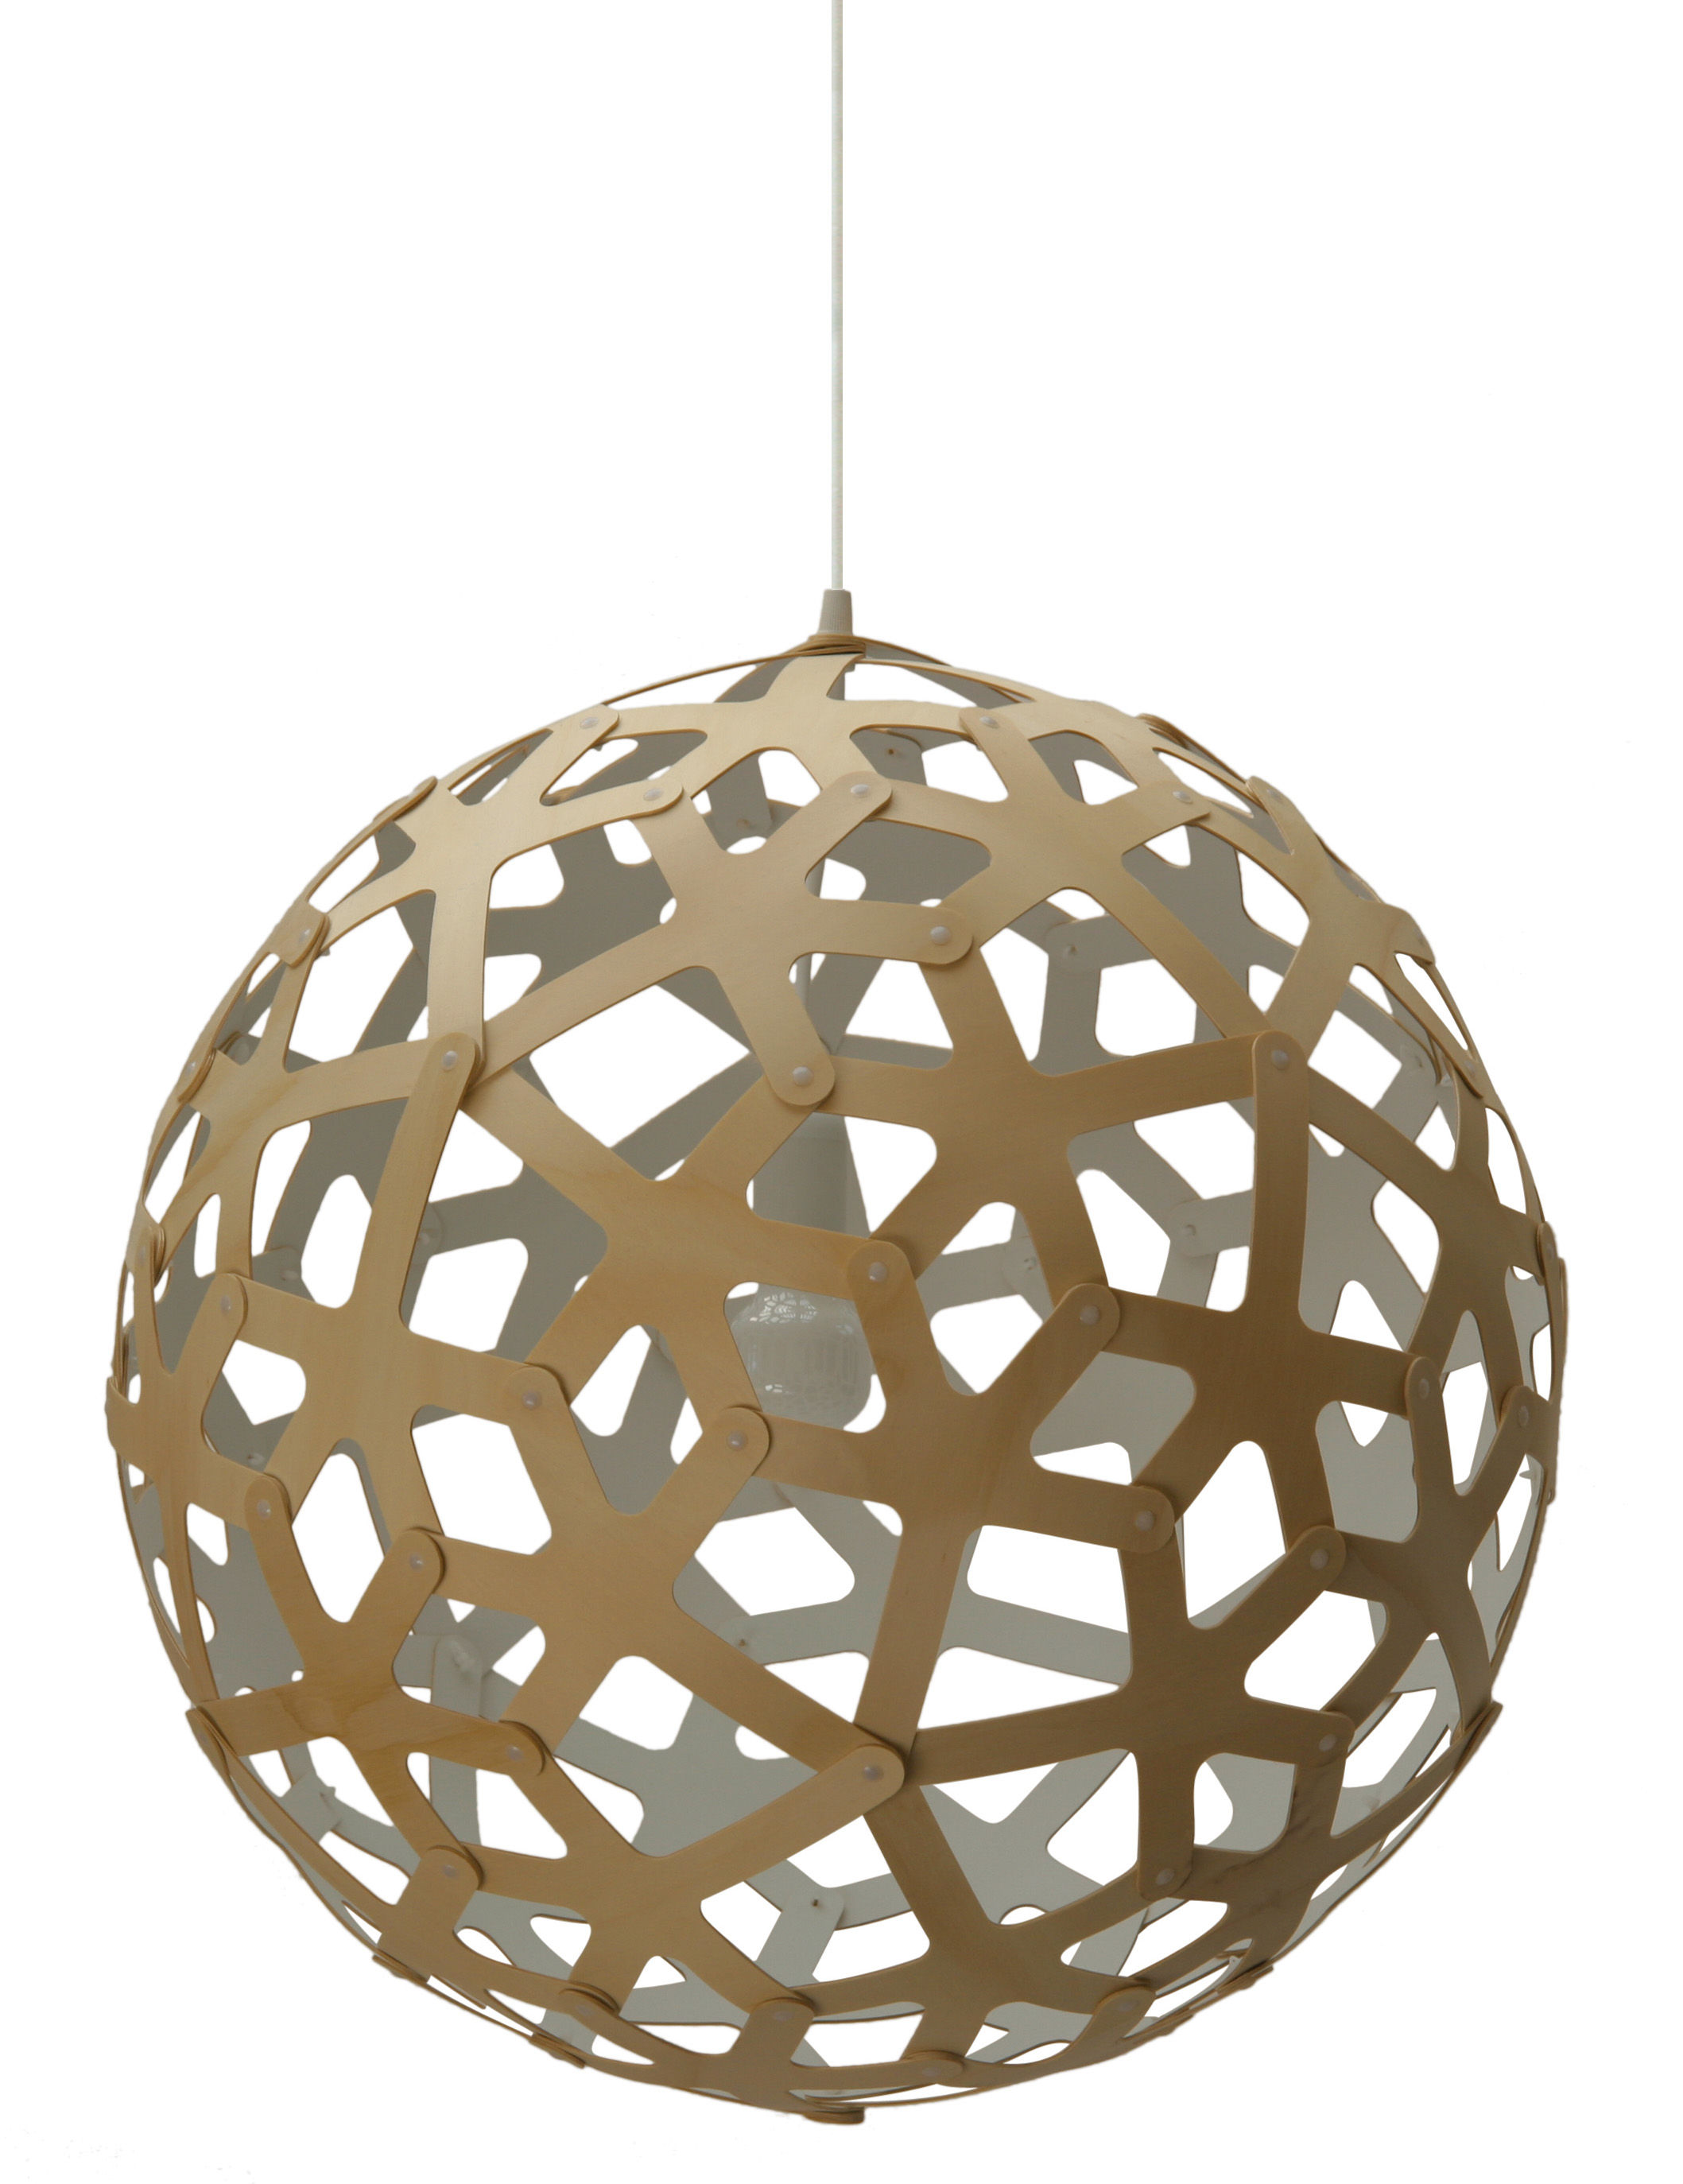 Luminaire - Suspensions - Suspension Coral / Ø 60 cm - Bicolore blanc & bois - David Trubridge - Blanc / Bois naturel - Pin